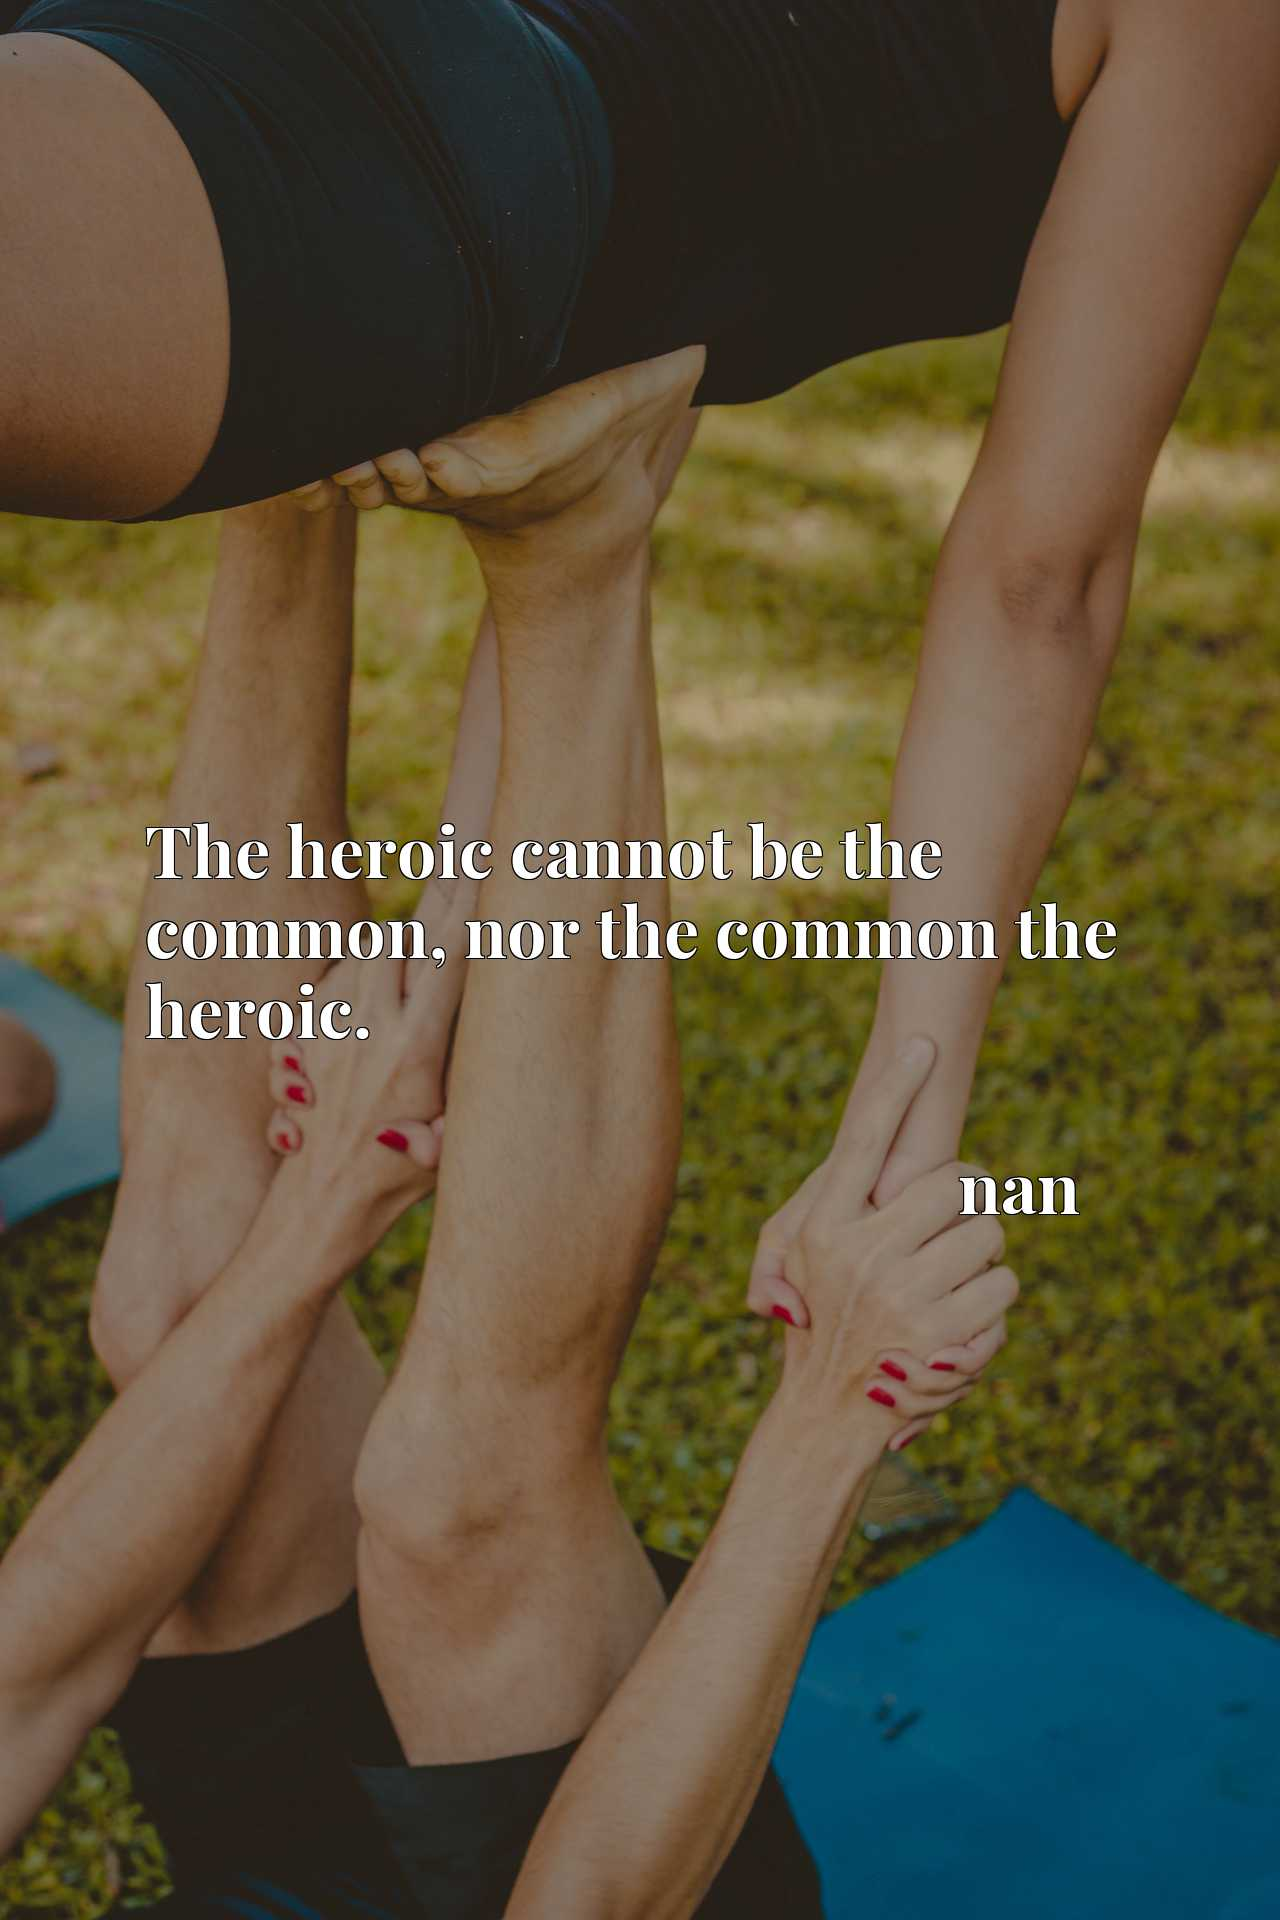 The heroic cannot be the common, nor the common the heroic.